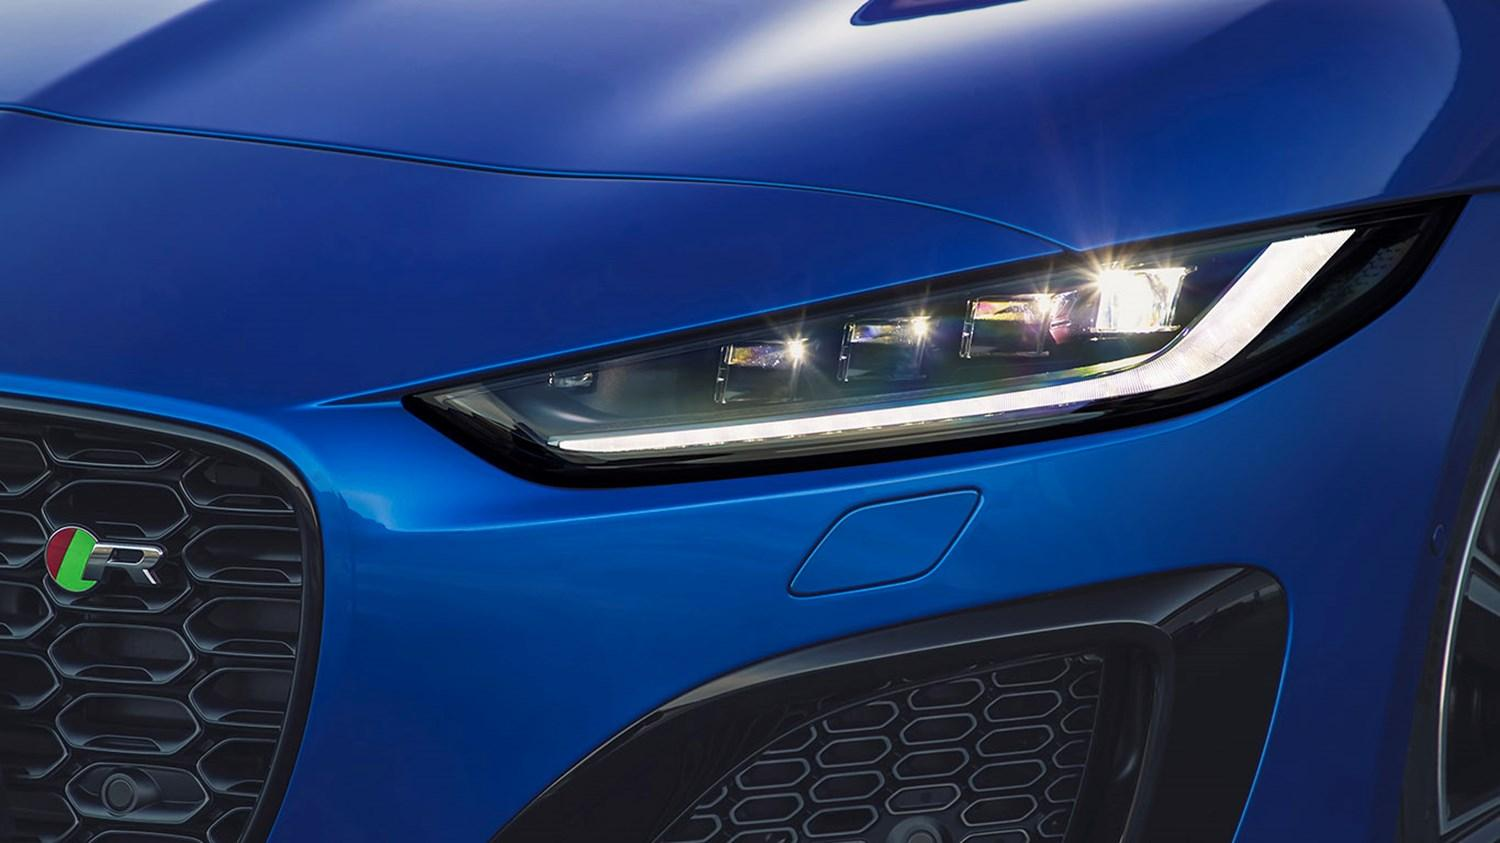 Zoomed in image of a jaguar headlight